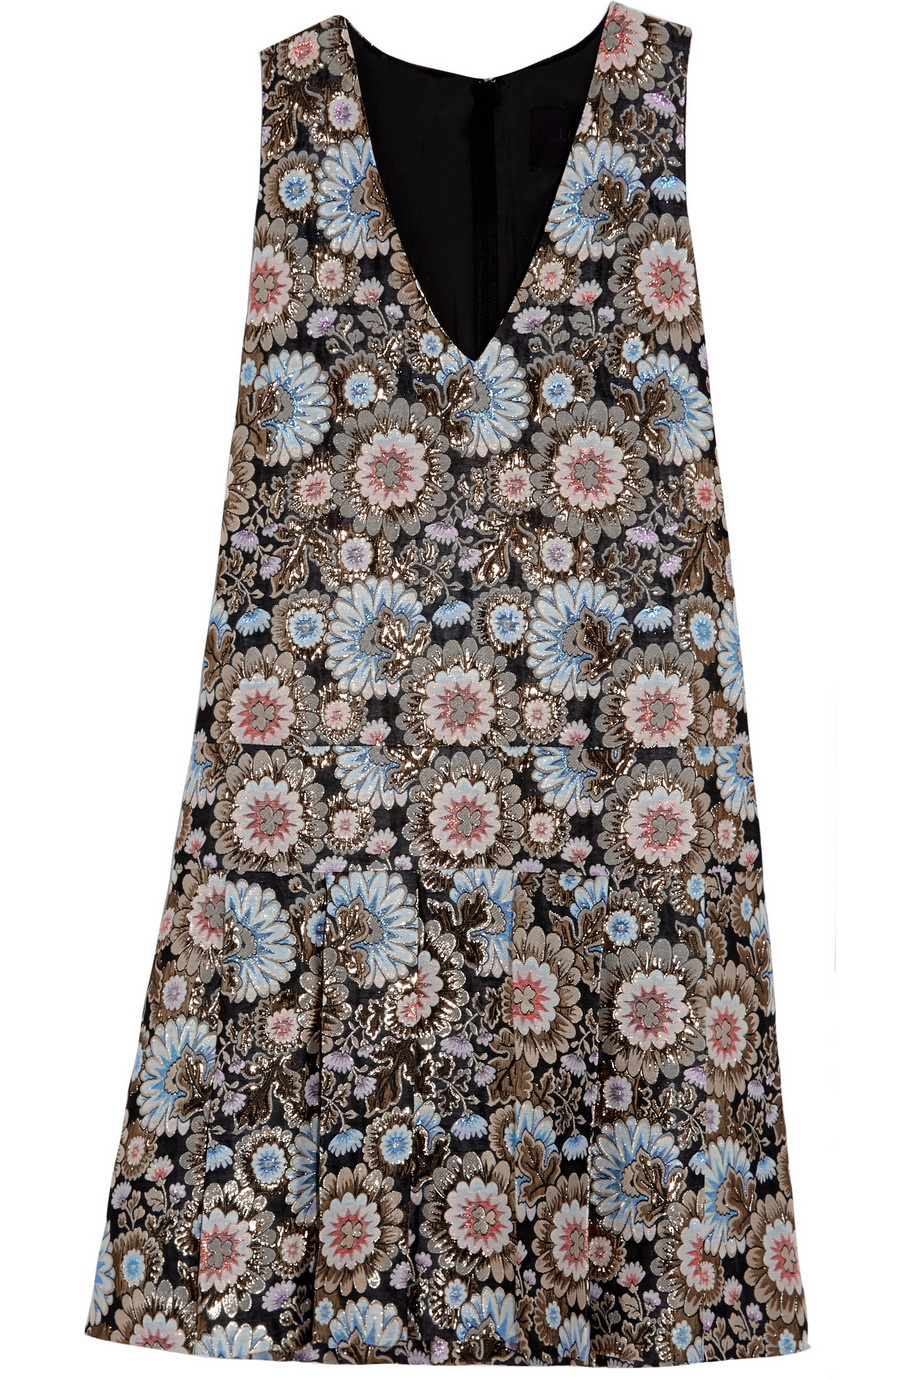 Collection Metallic Floral Jacquard Dress Black - style: shift; neckline: low v-neck; sleeve style: standard vest straps/shoulder straps; predominant colour: pale blue; secondary colour: taupe; occasions: casual, creative work; length: just above the knee; fit: soft a-line; fibres: nylon - mix; sleeve length: sleeveless; pattern type: fabric; pattern size: big & busy; pattern: patterned/print; texture group: brocade/jacquard; multicoloured: multicoloured; season: a/w 2015; wardrobe: highlight